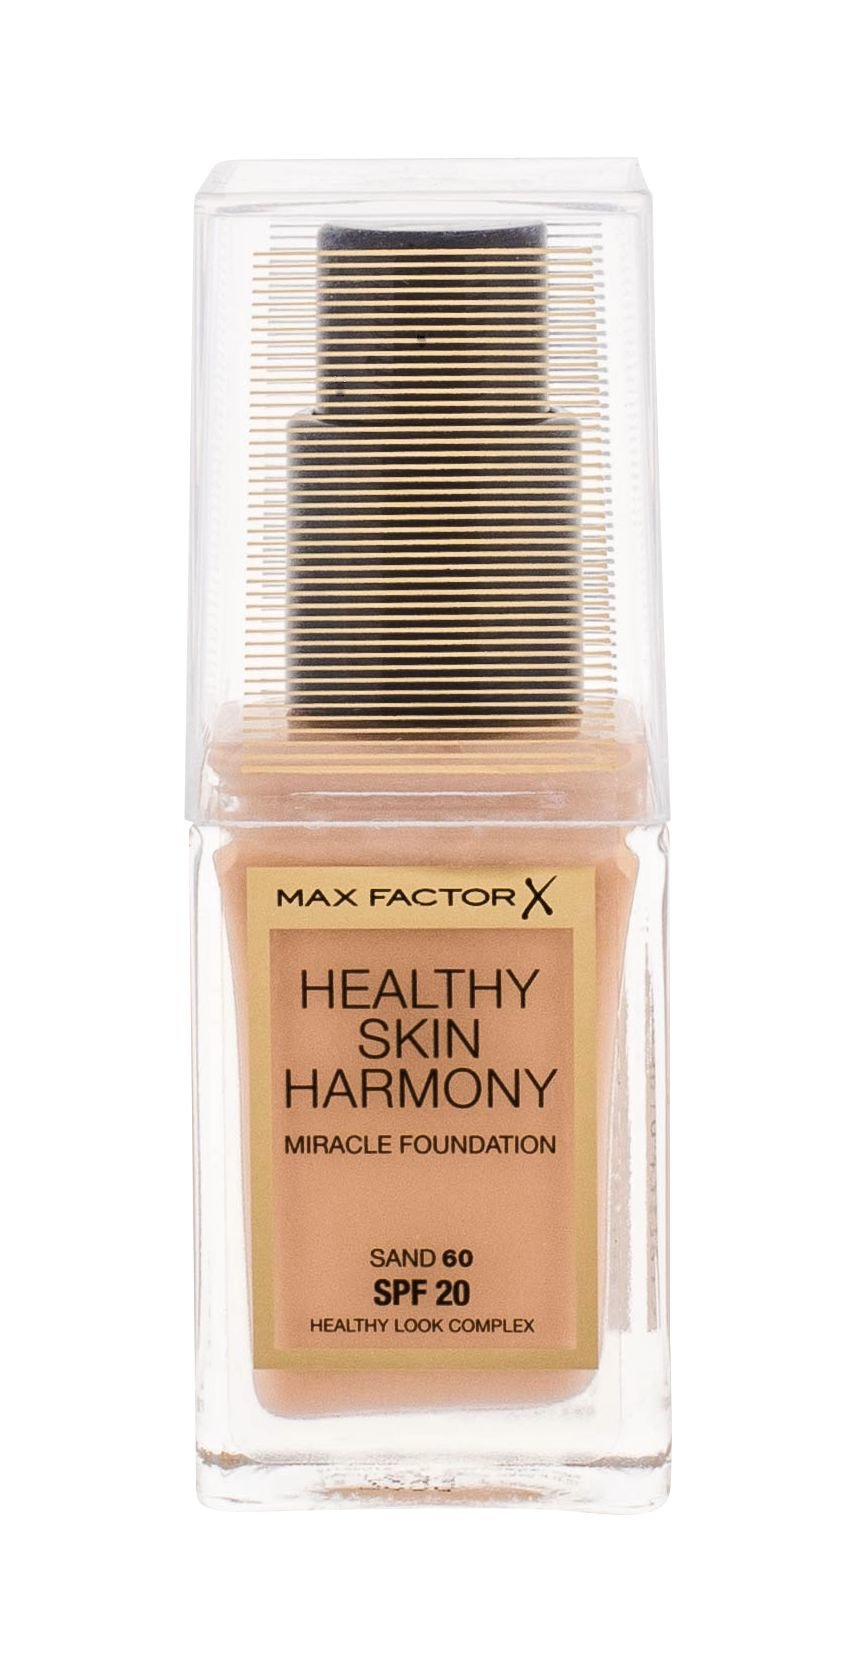 Max Factor Healthy Skin Harmony Makeup 30ml 60 Sand